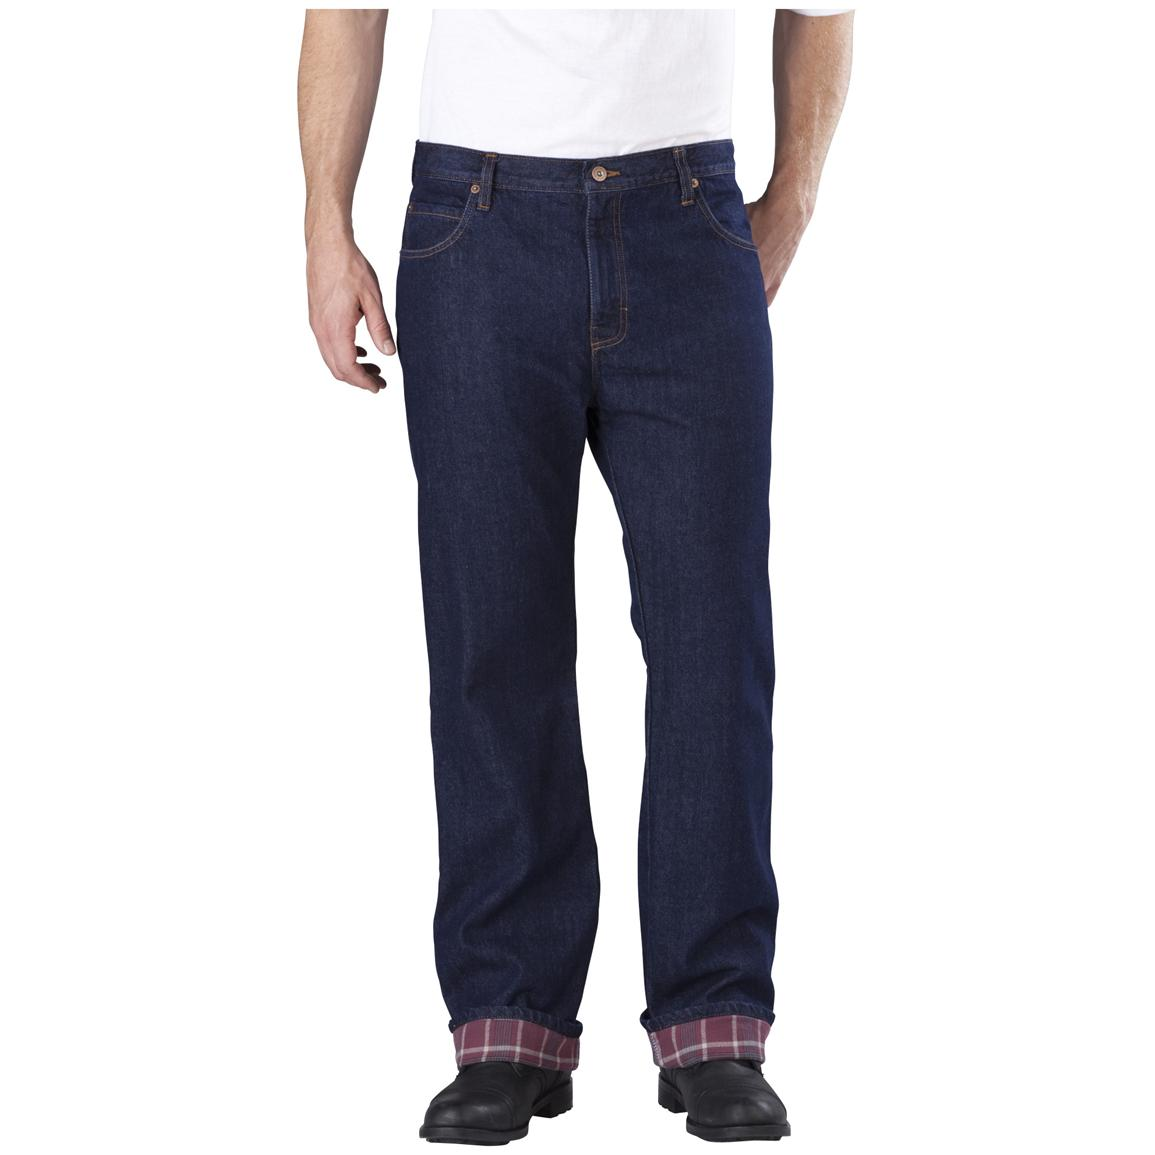 Men's Dickies Relaxed Straight Fit Flannel-lined Jeans, Rinsed Indigo